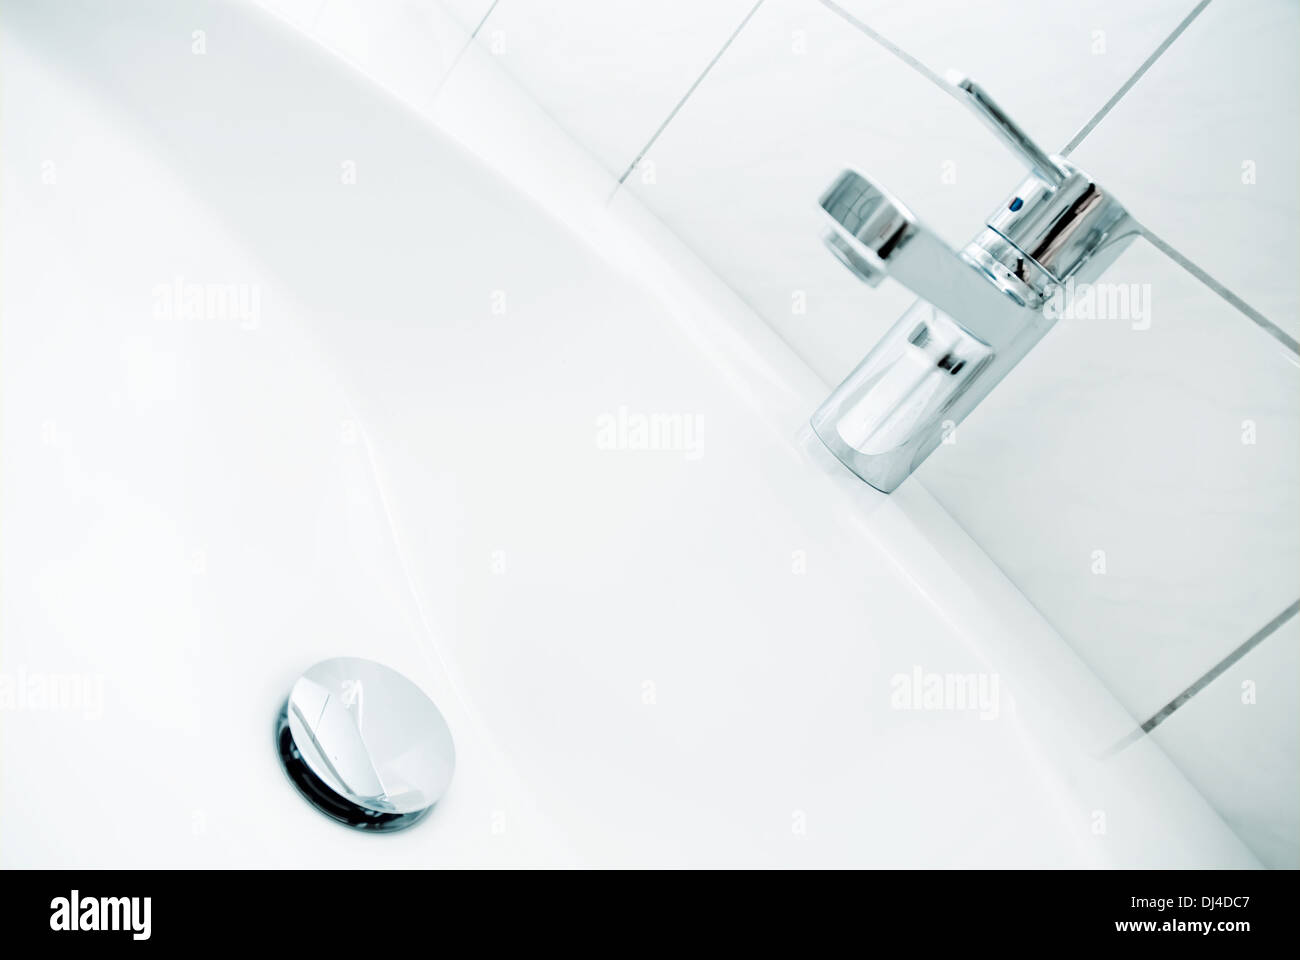 Sink with faucet and drain Stock Photo